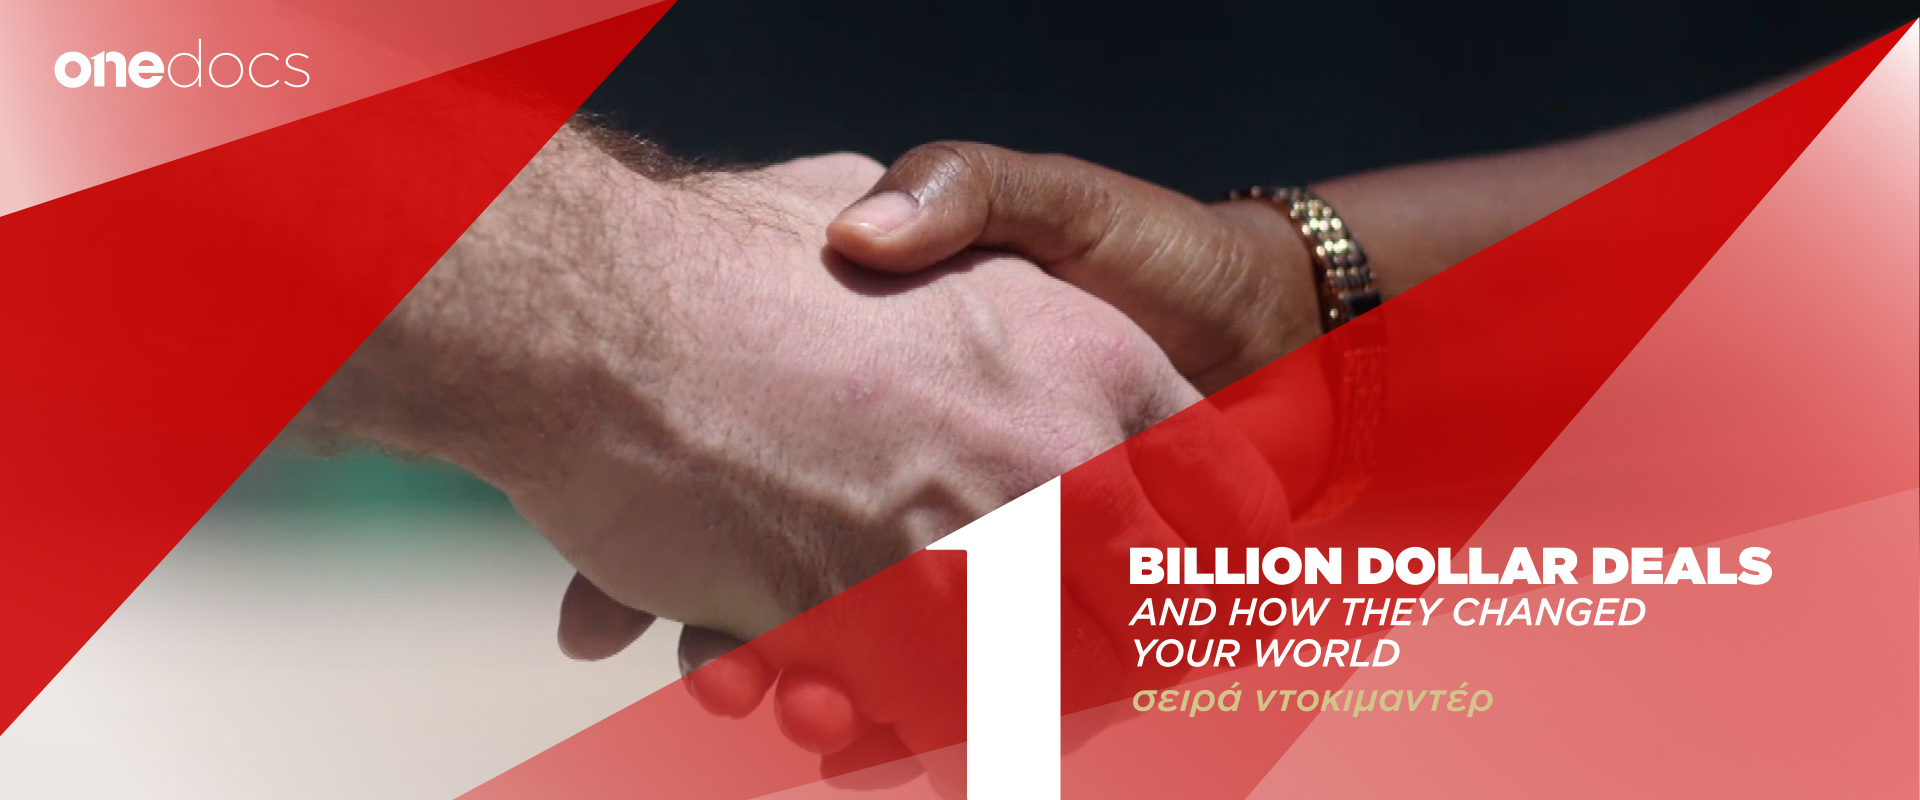 BILLION DOLLARS DEALS AND HOW THEY CHANGED YOUR WORLD